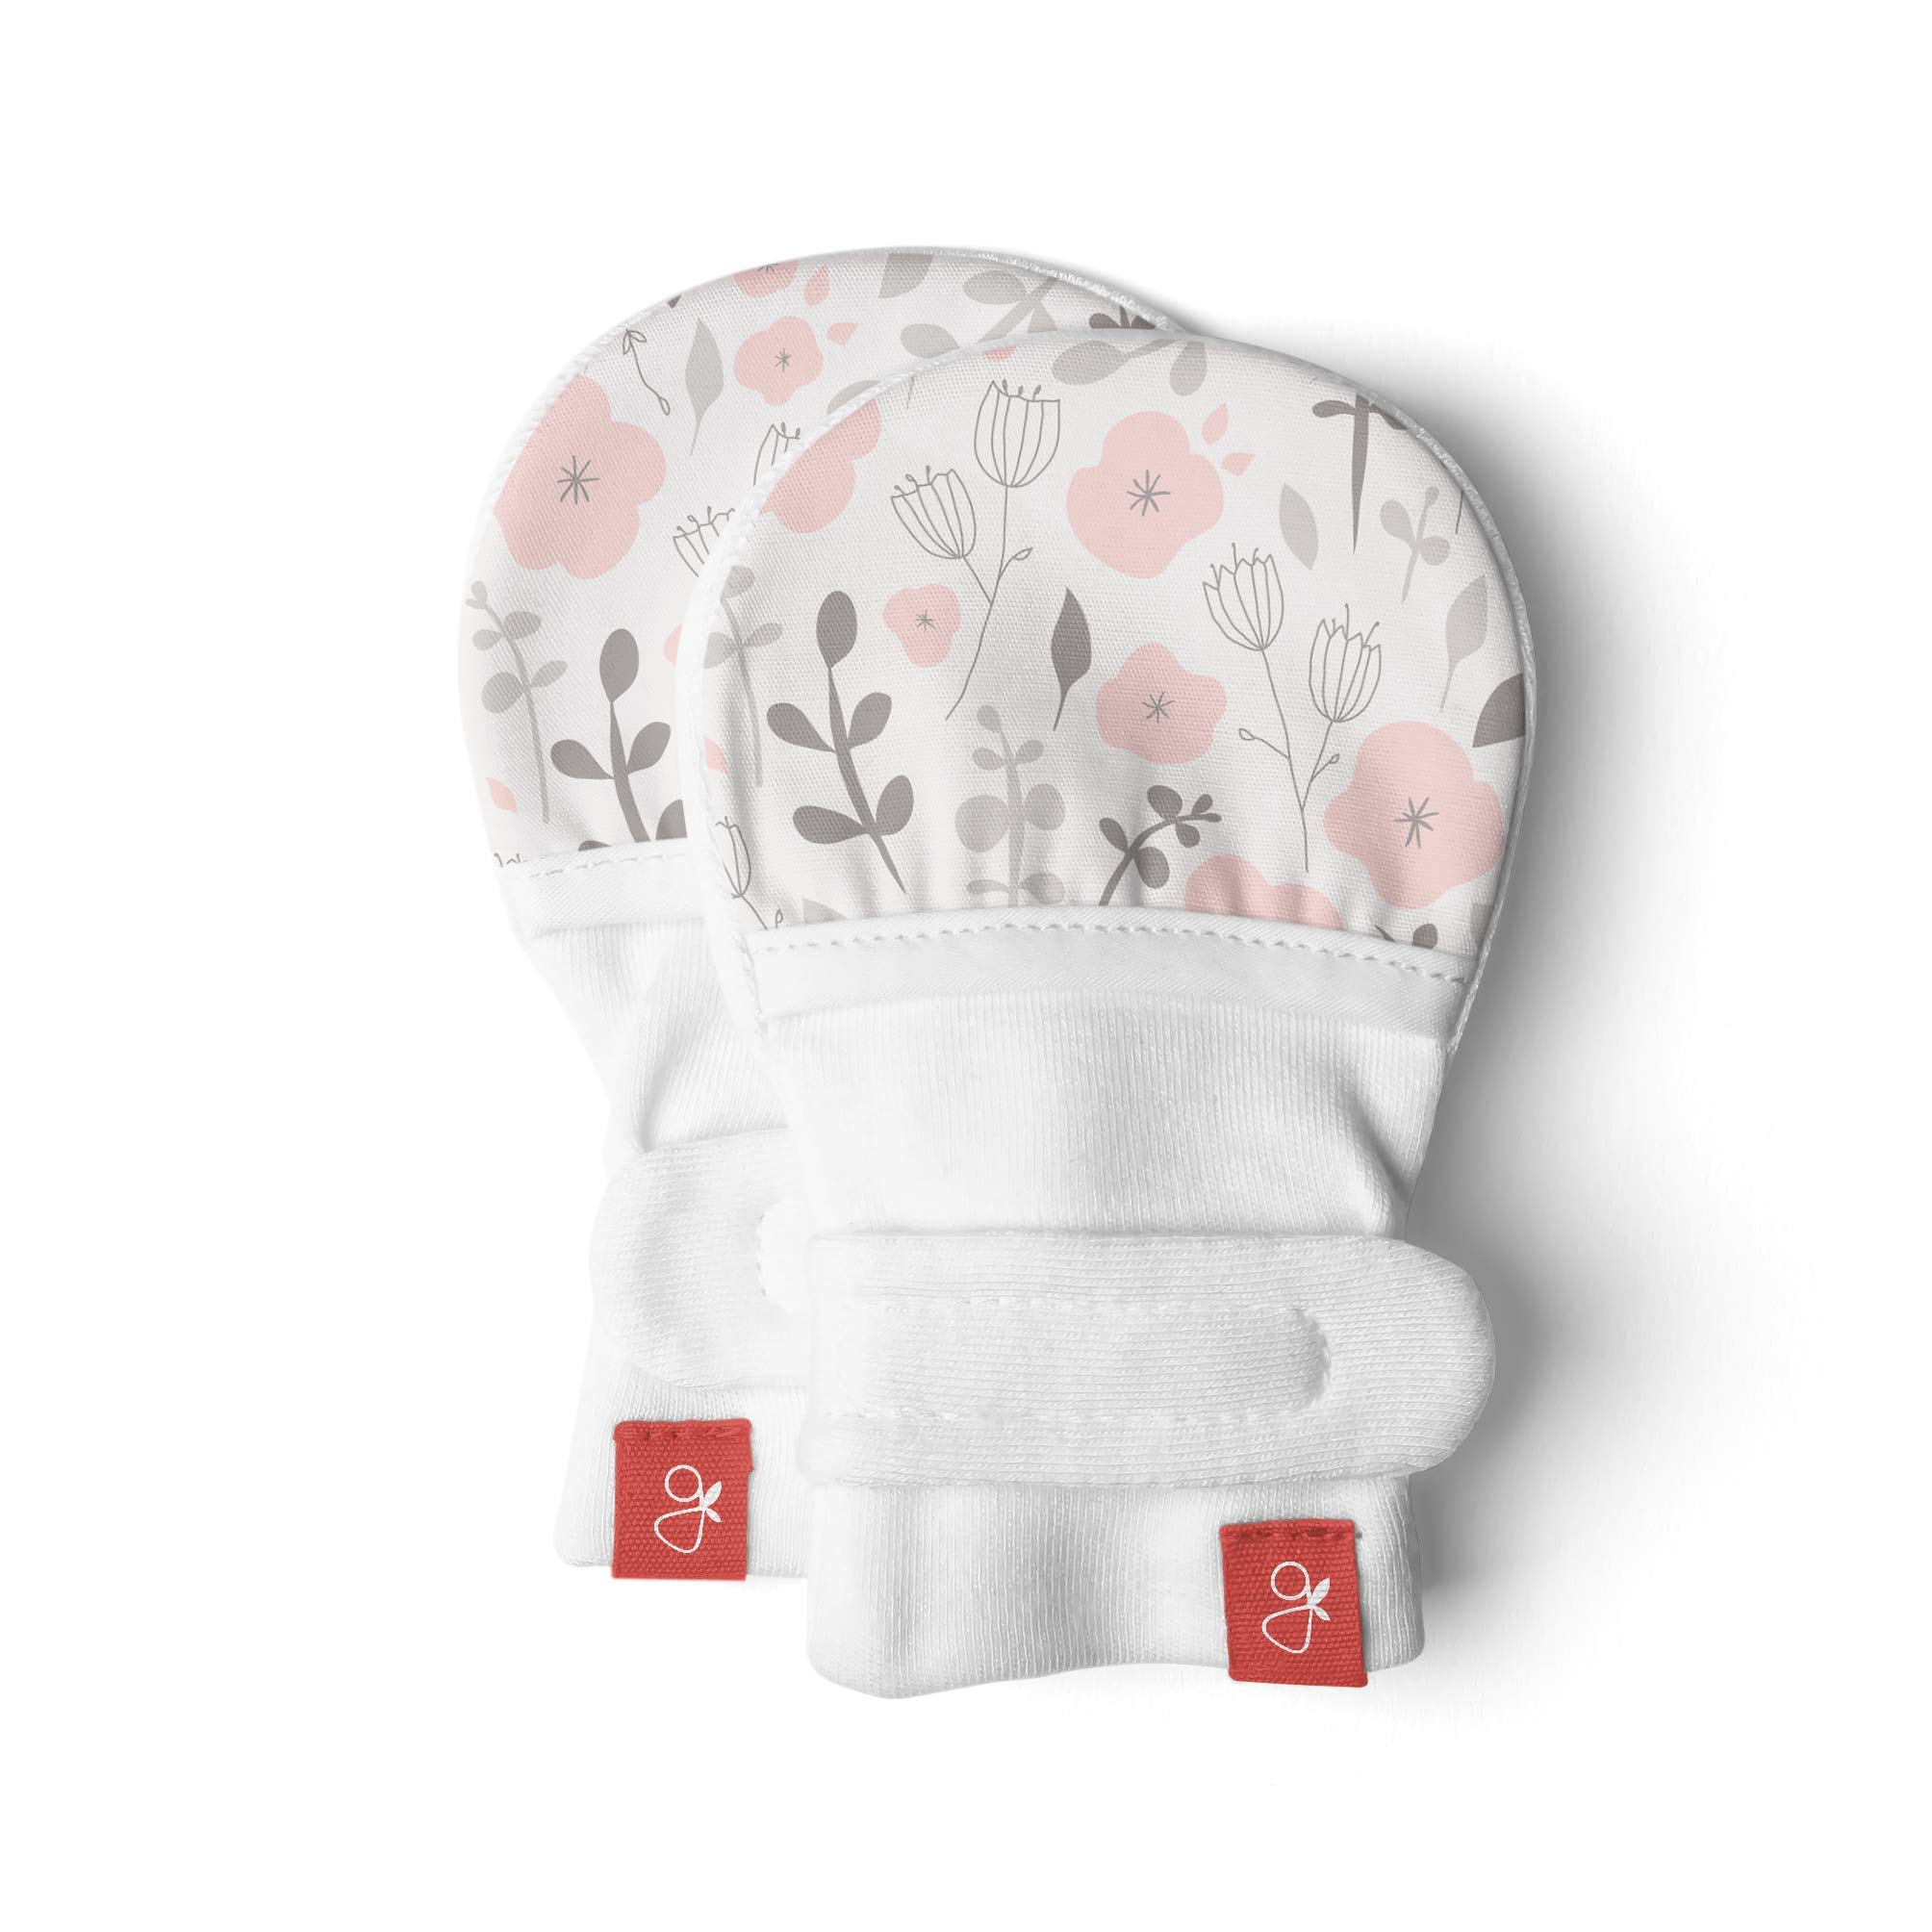 Goumimitts, Scratch Free Baby Mittens, Organic Soft Stay On Unisex Mittens, Stops Scratches and Prevents Germs (0-3 Months, Enchanted Garden)